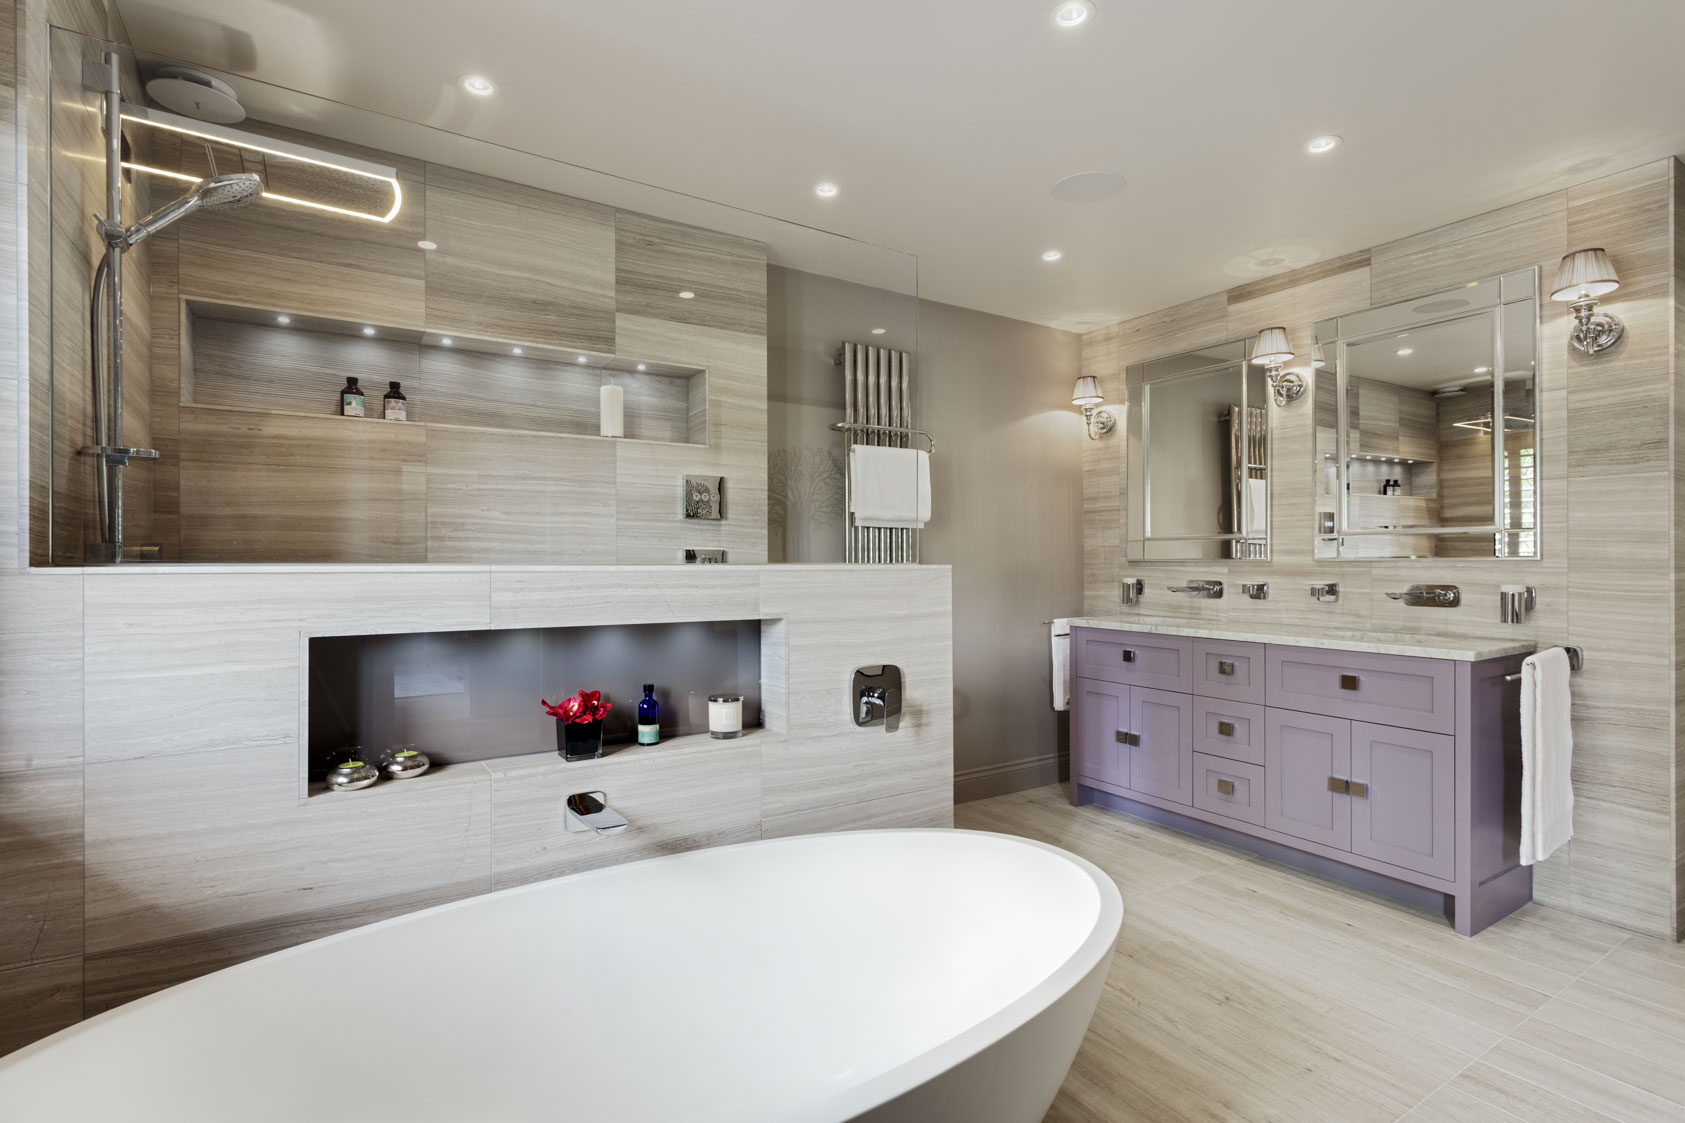 The brighton bathroom company luxury bathroom design in for Bathroom ideas 3m x 2m